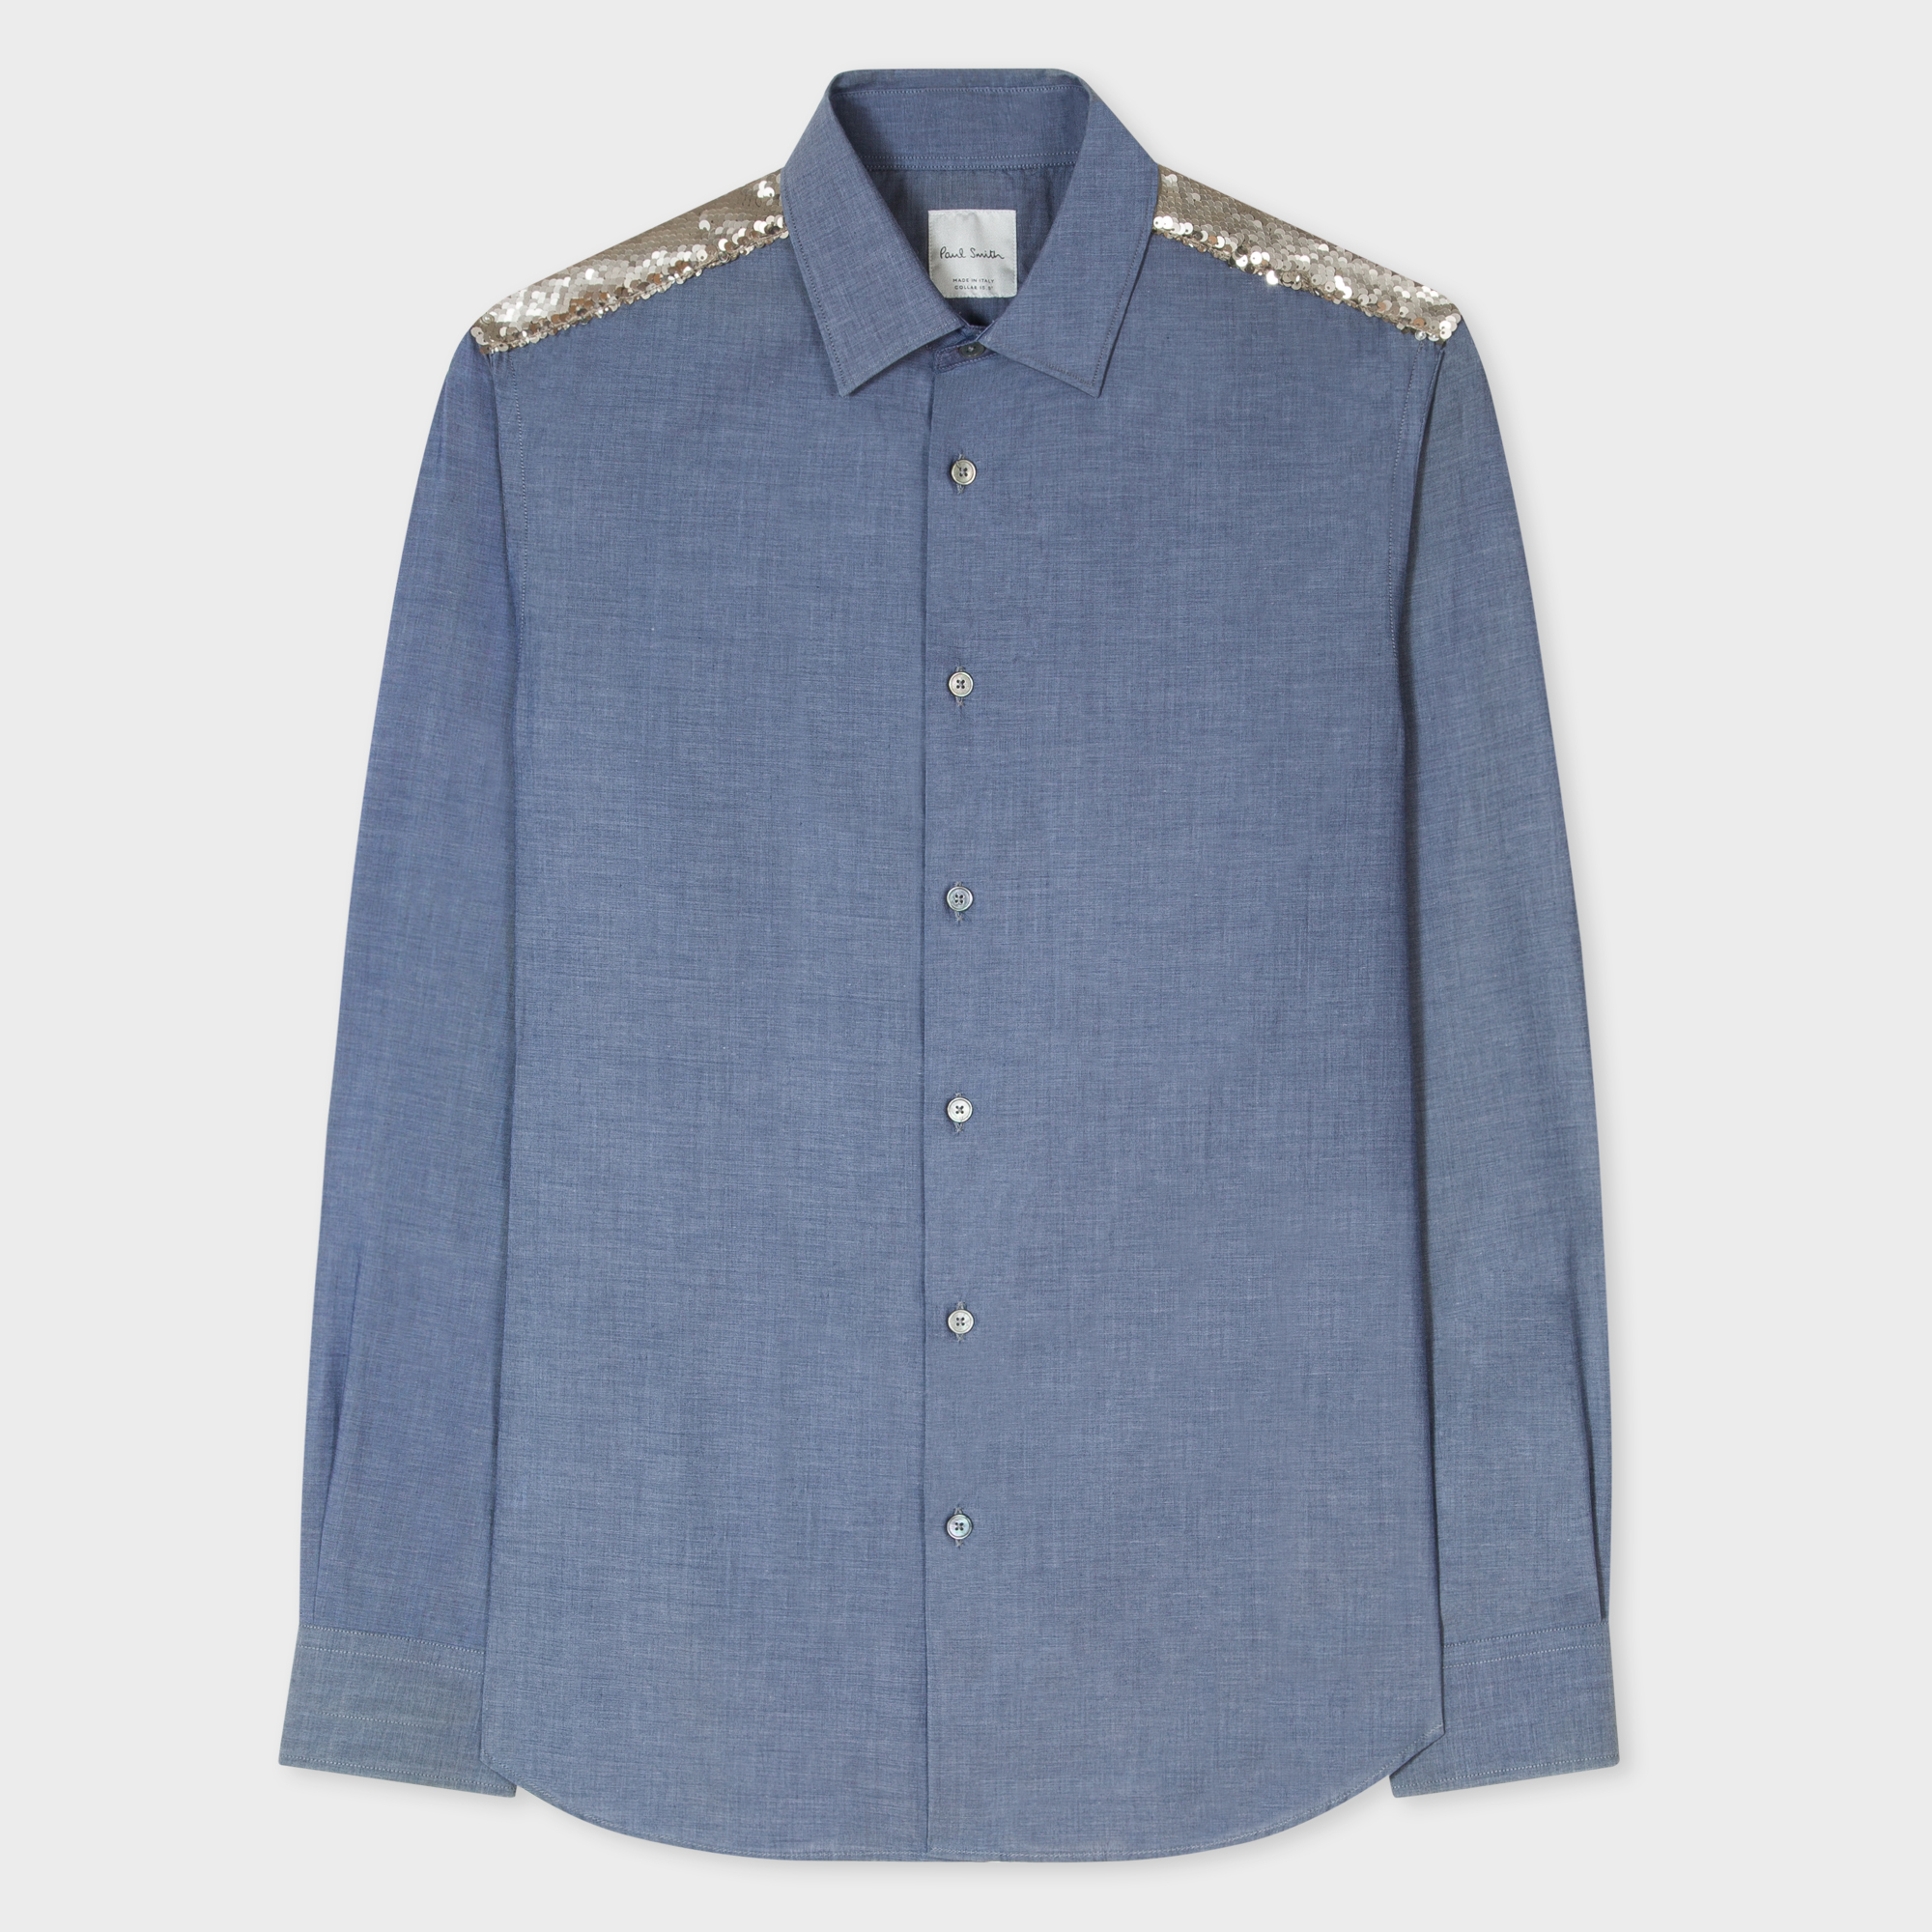 Paul Smith Men's Slim-Fit Blue Cotton Shirt With Sequined Shoulder Panel